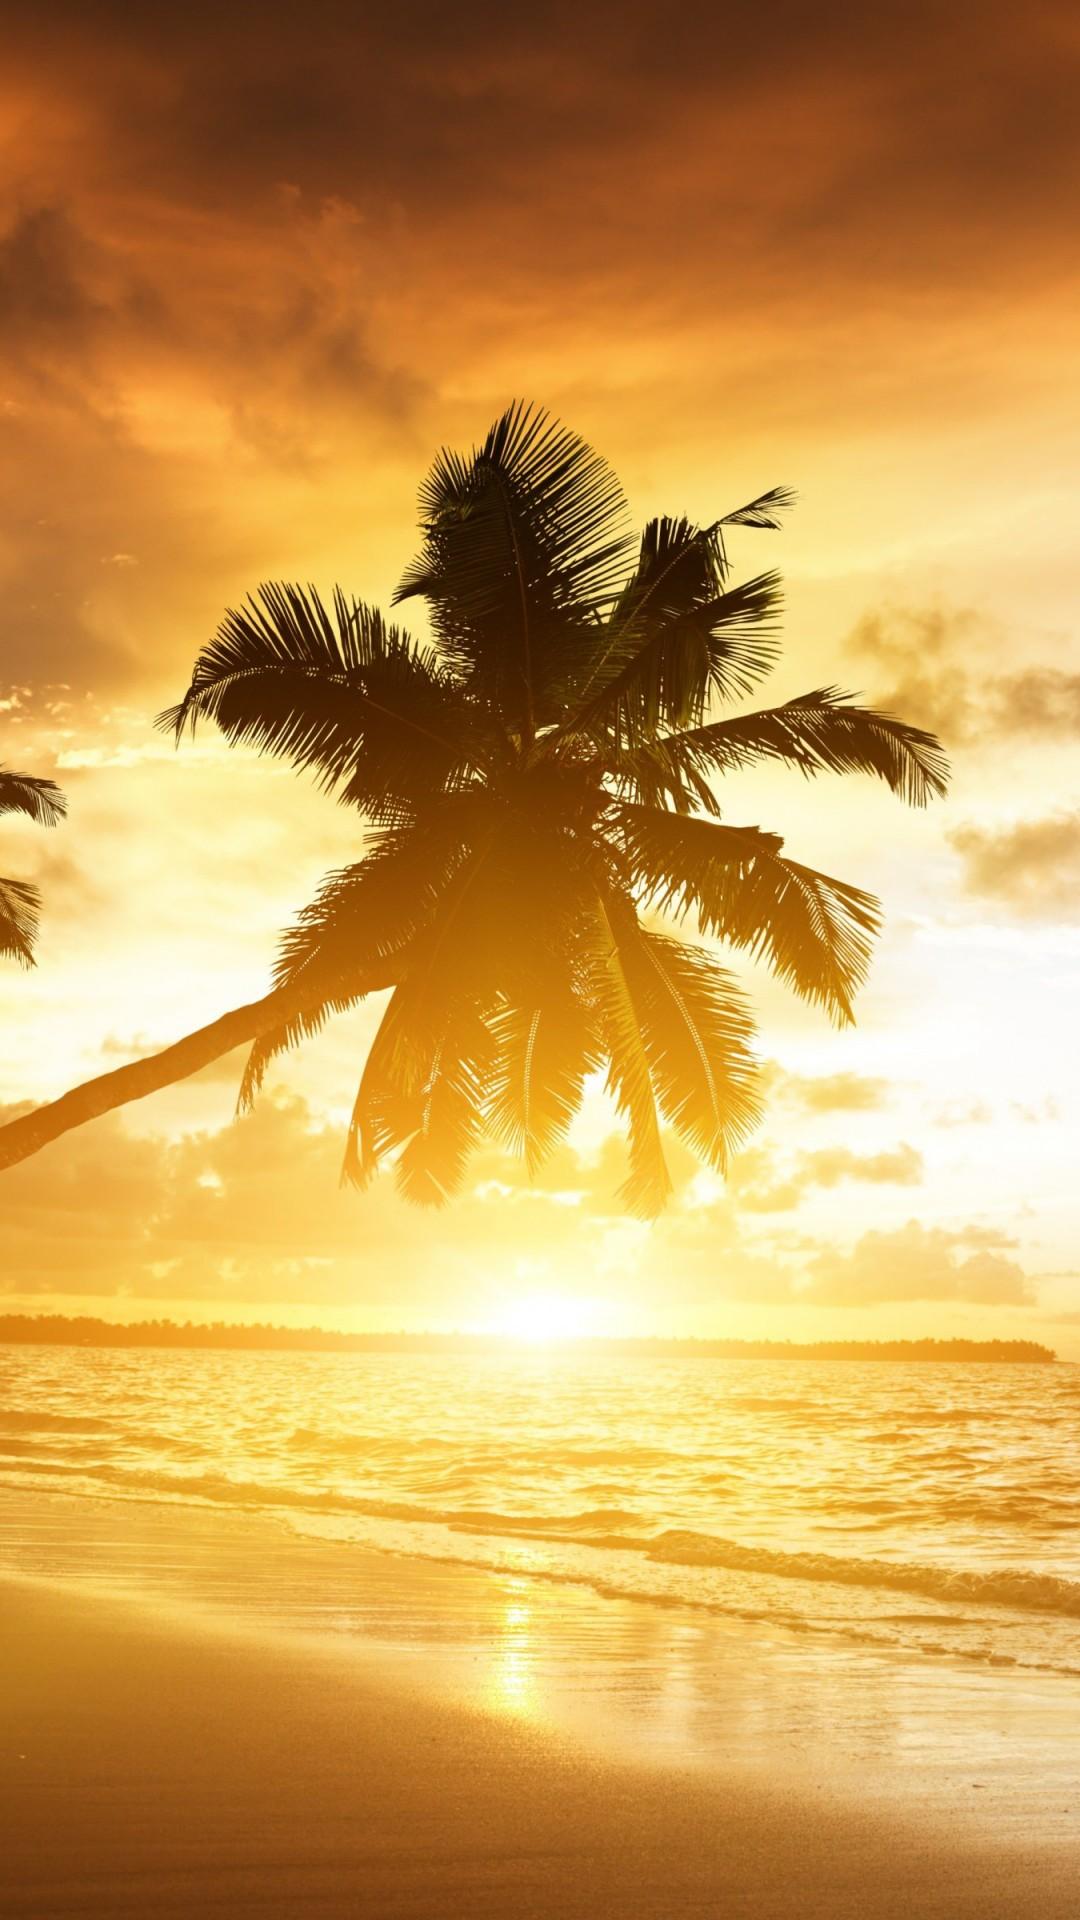 Beach With Palm Trees At Sunset Wallpaper for Motorola Moto X